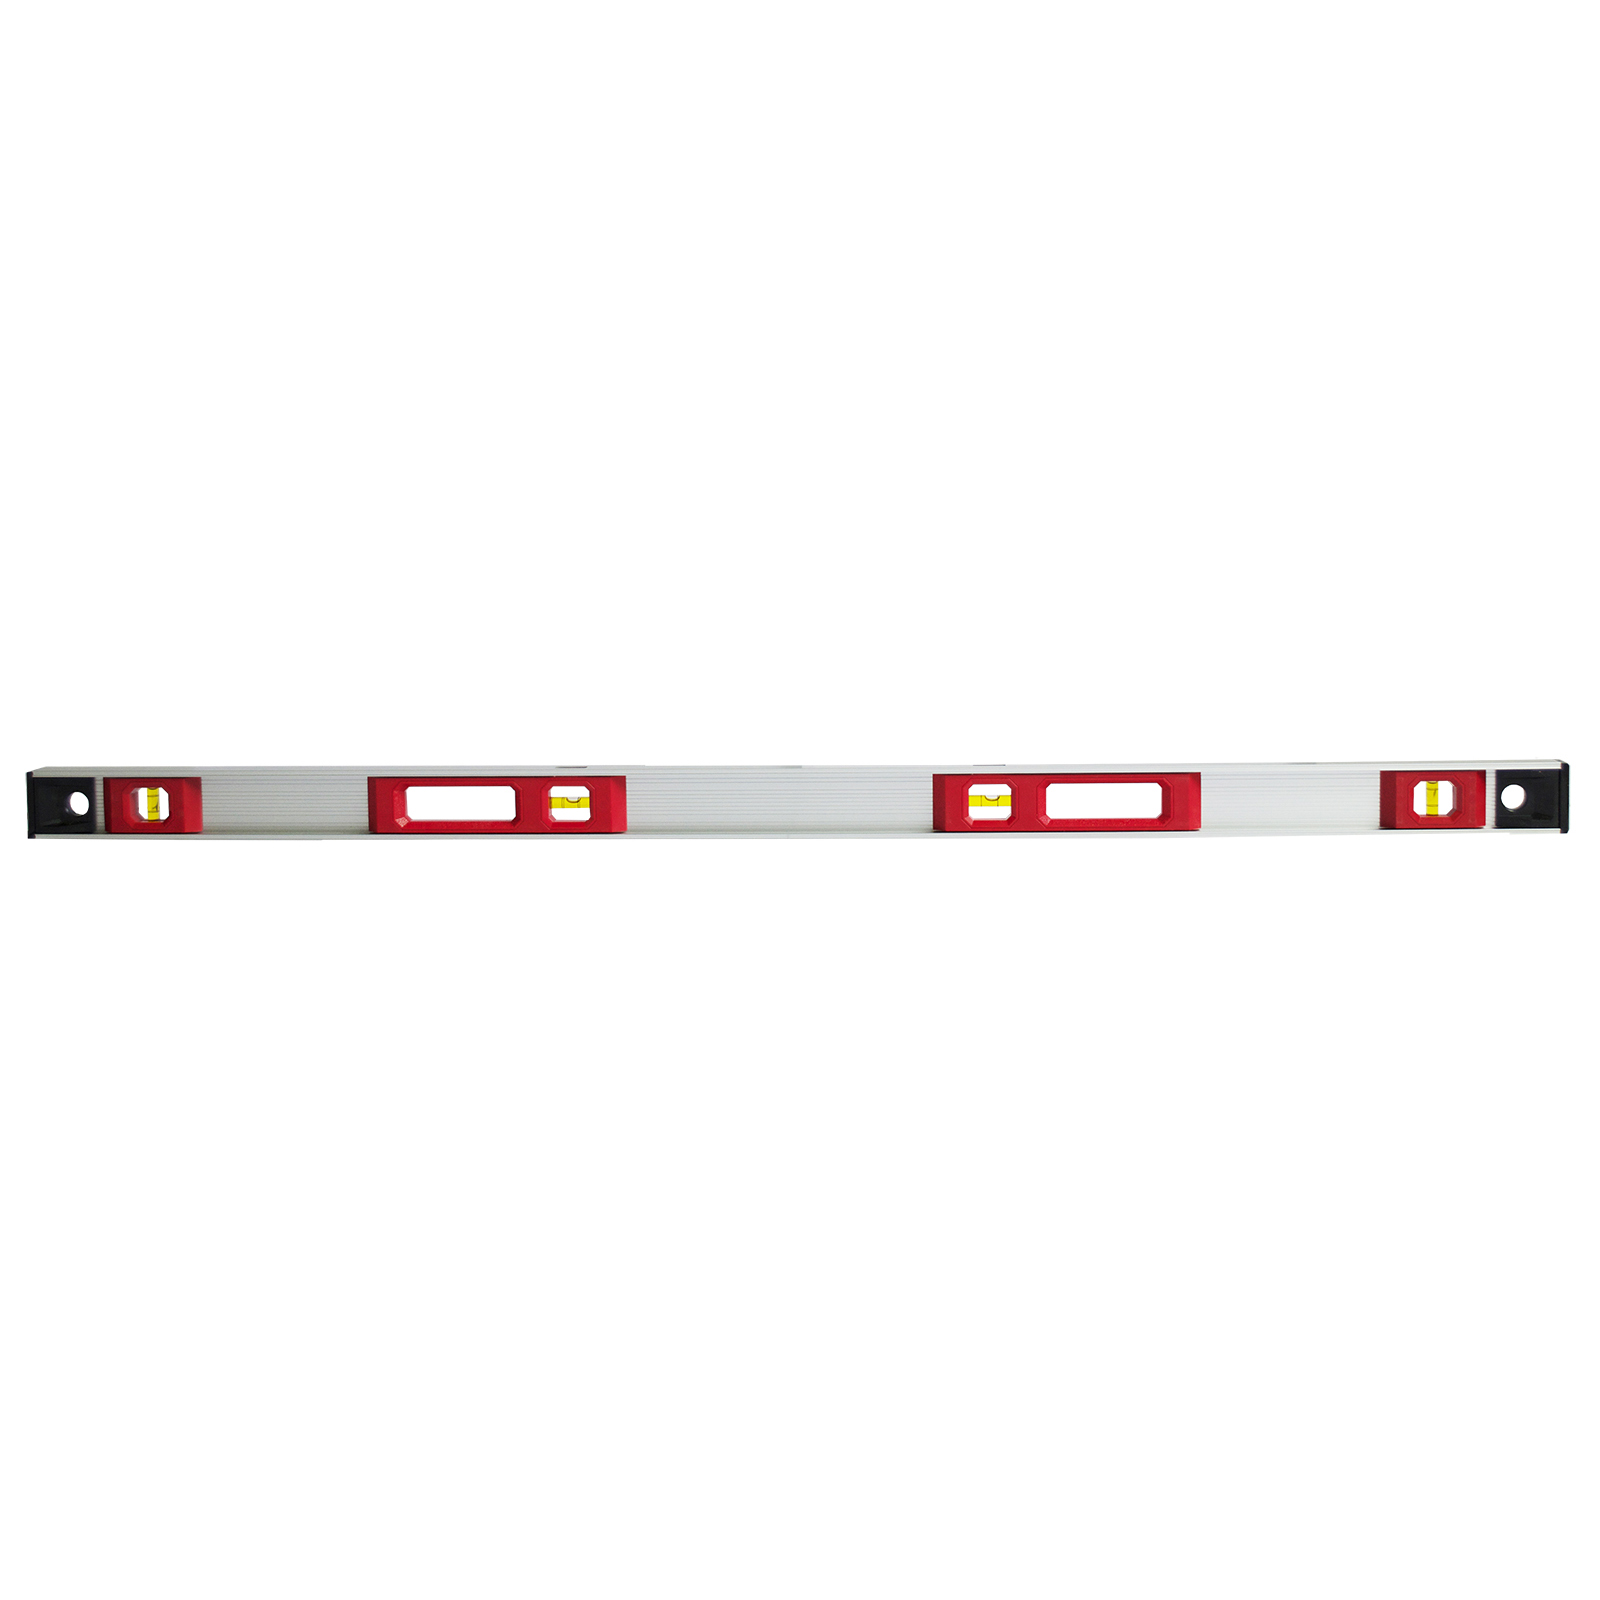 Craftsman 48 in. Aluminum Level